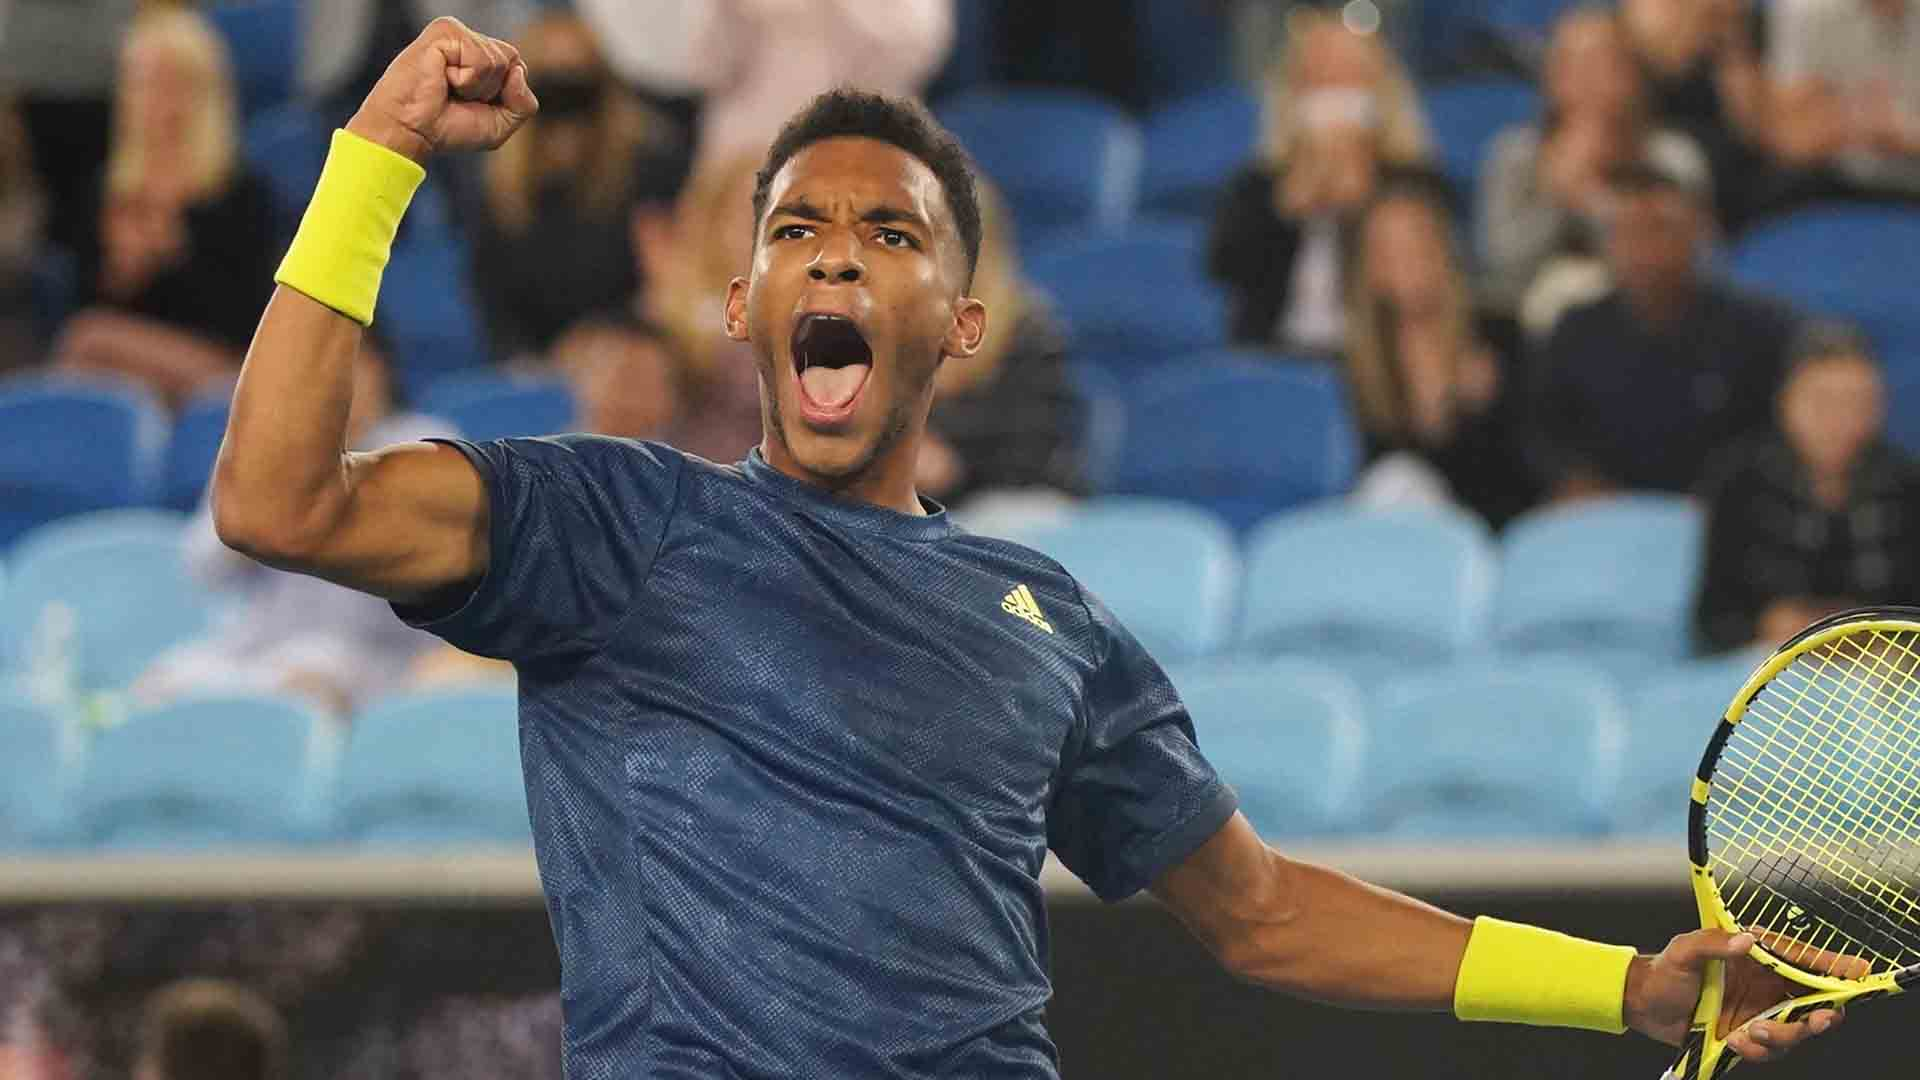 <a target='_blank' href='https://www.atptour.com/en/players/felix-auger-aliassime/ag37/overview'>Felix Auger-Aliassime</a> is through to the <a target='_blank' href='https://www.atptour.com/en/tournaments/australian-open/580/overview'>Australian Open</a> Round of 16 for the first time.